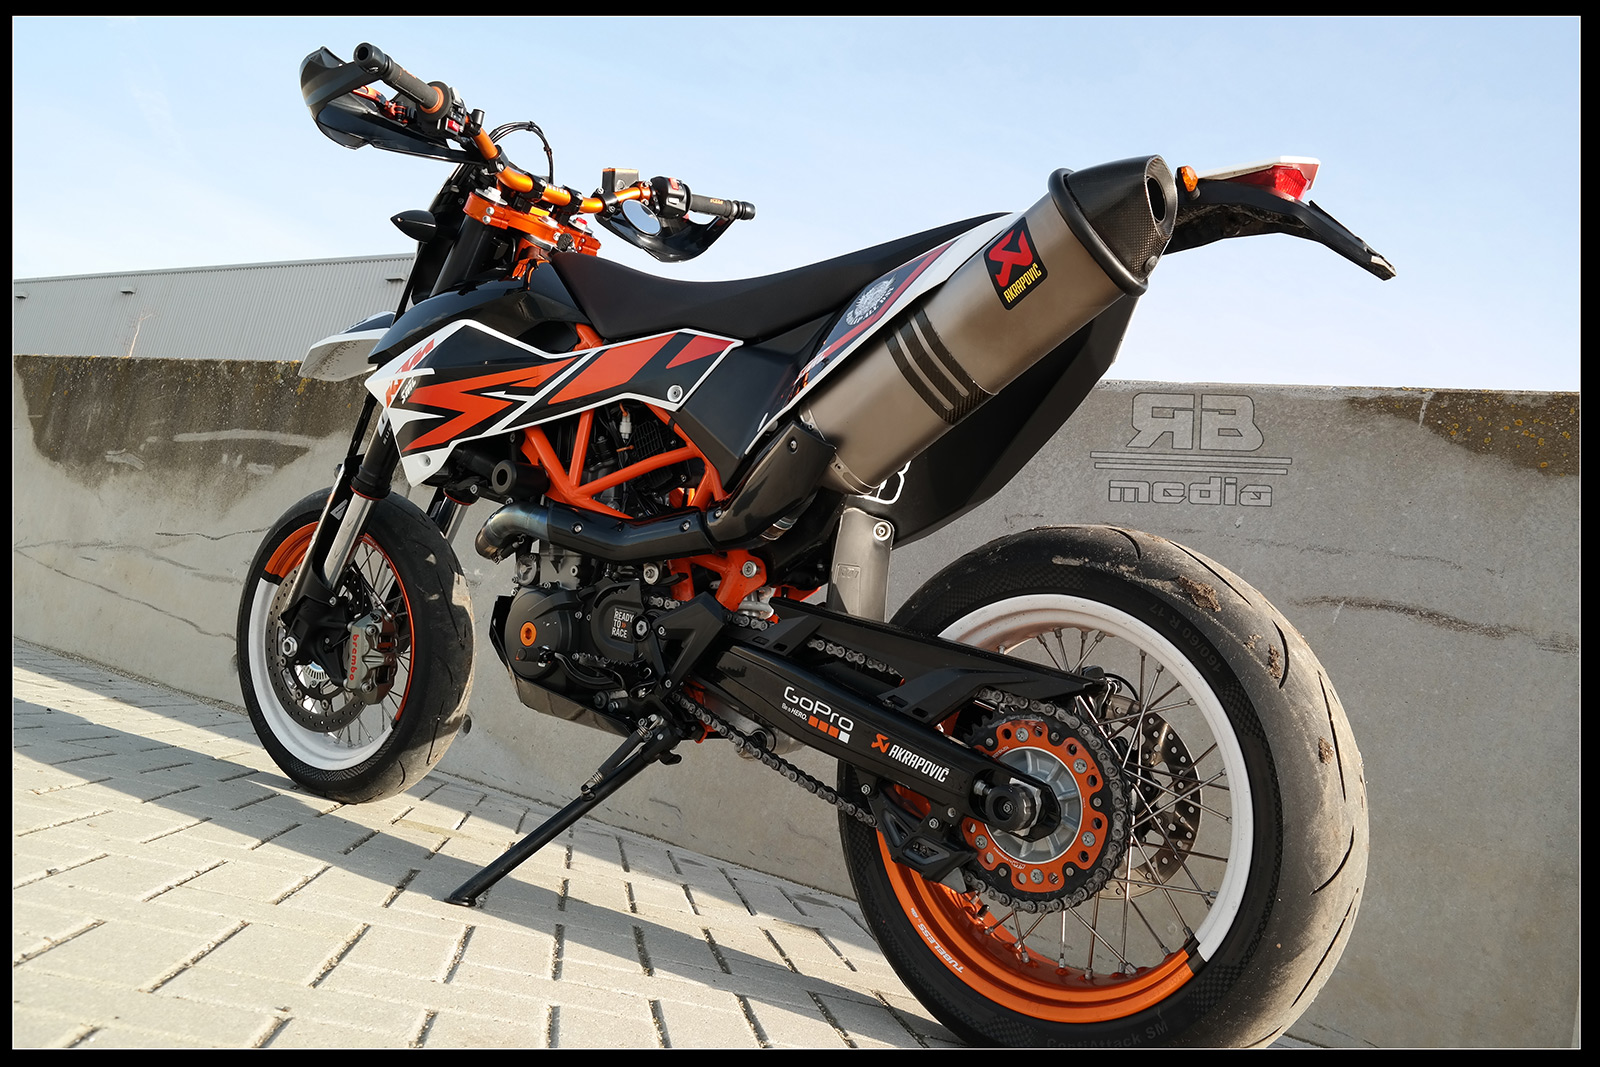 Ktm Handguards With Mirrors